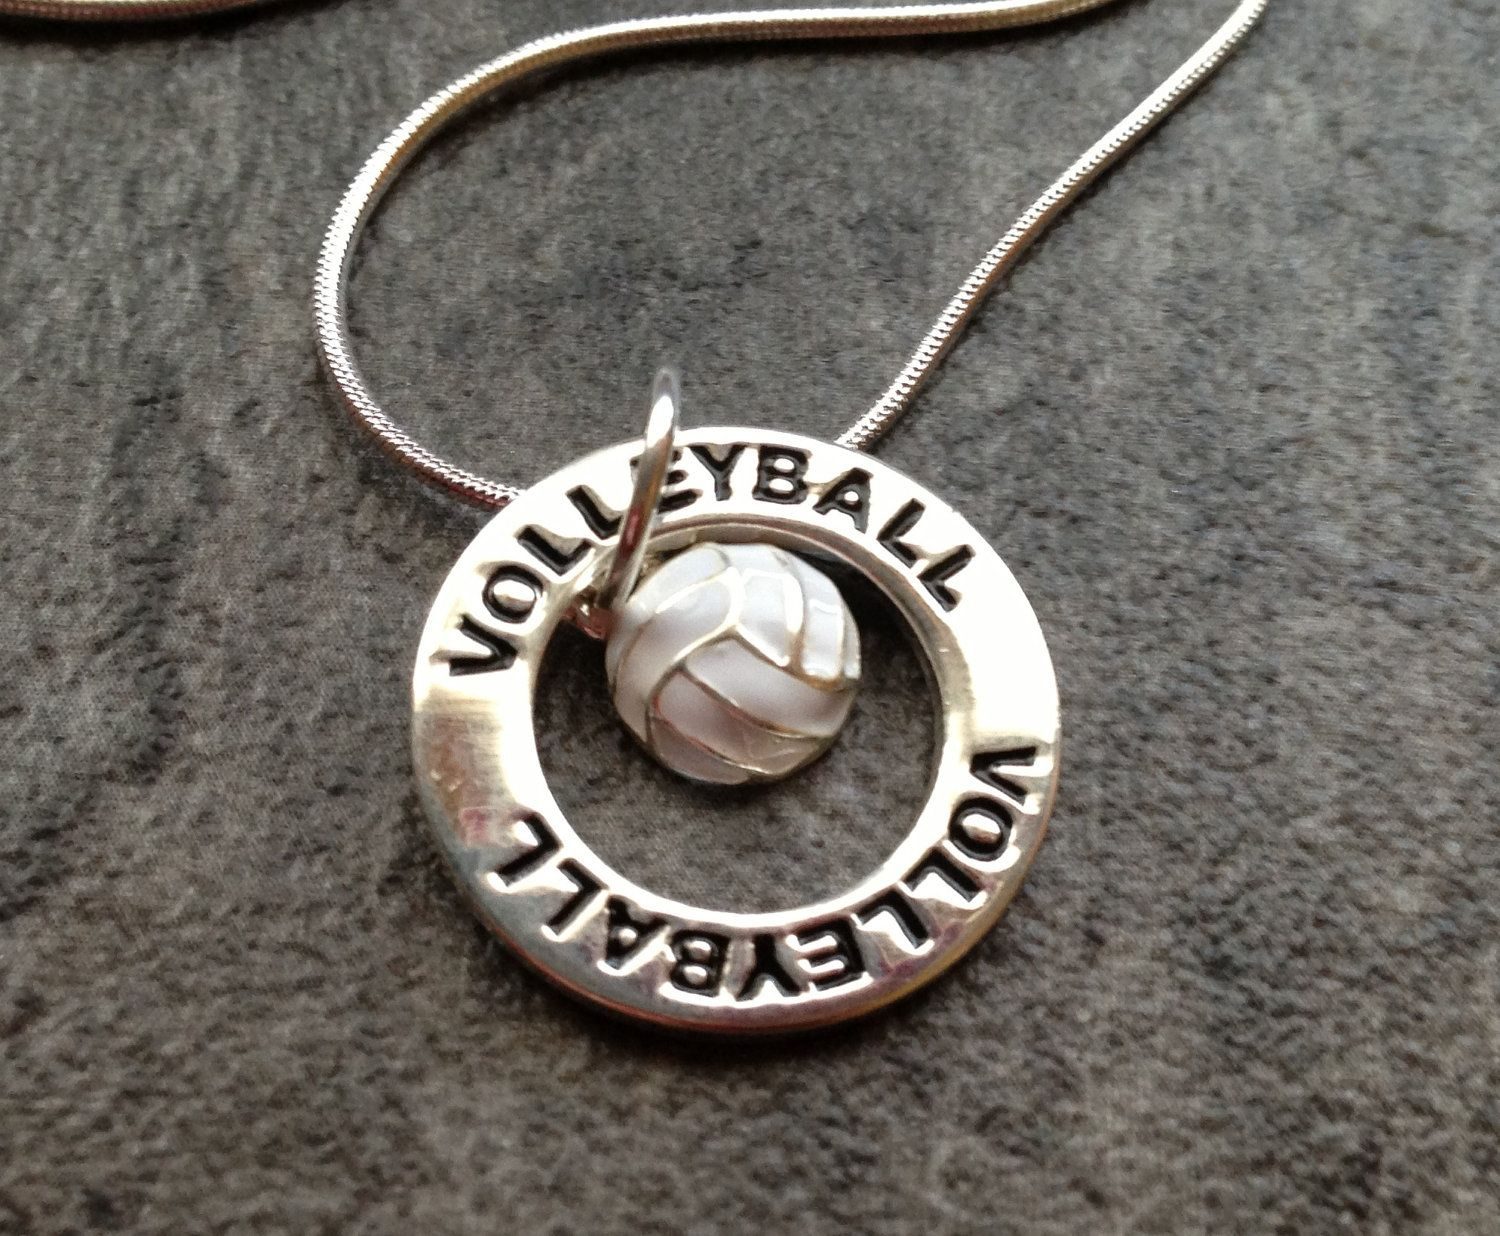 Volleyball Necklace Silver Volleyball Charm Necklace 15 00 Via Etsy Volleyball Necklace Silver Necklaces